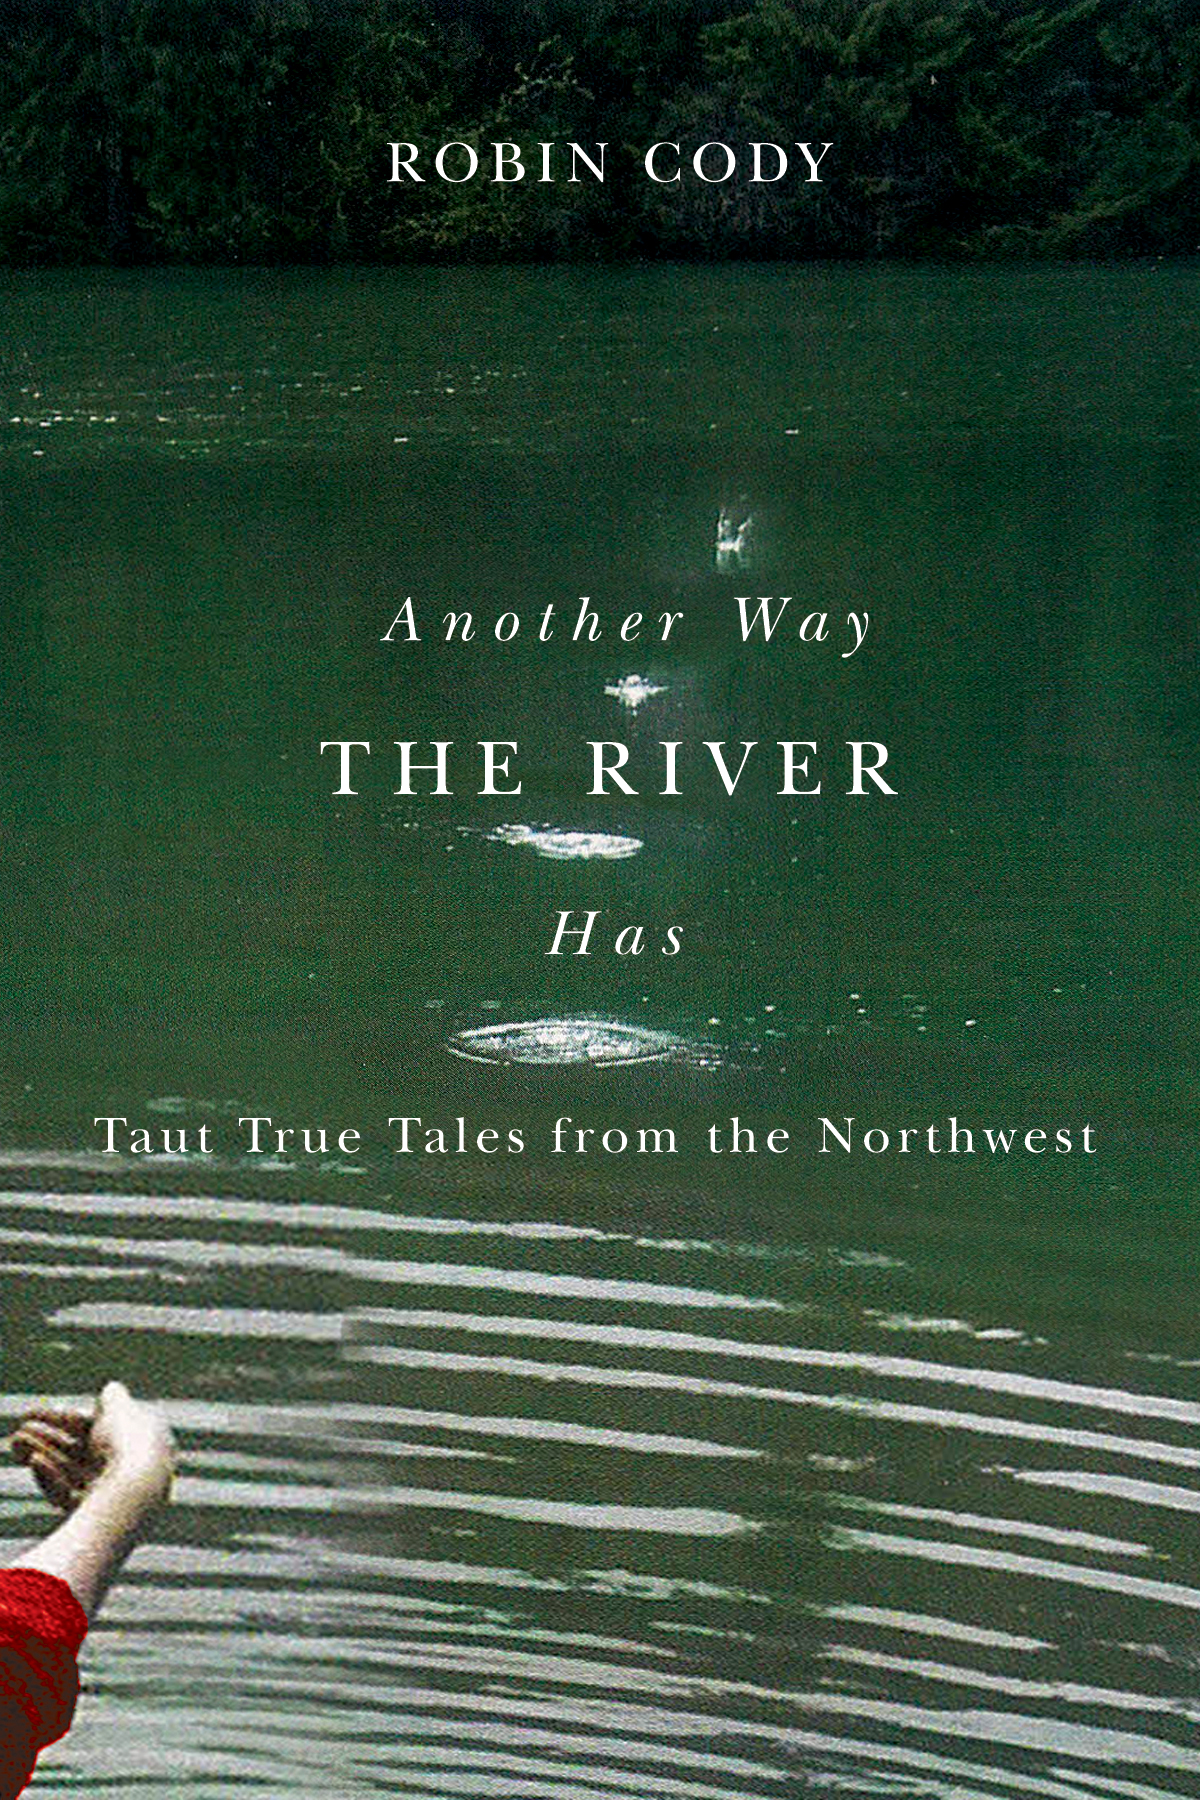 ANOTHER WAY THE RIVER HAS Taut True Tales from the Northwest by Robin Cody